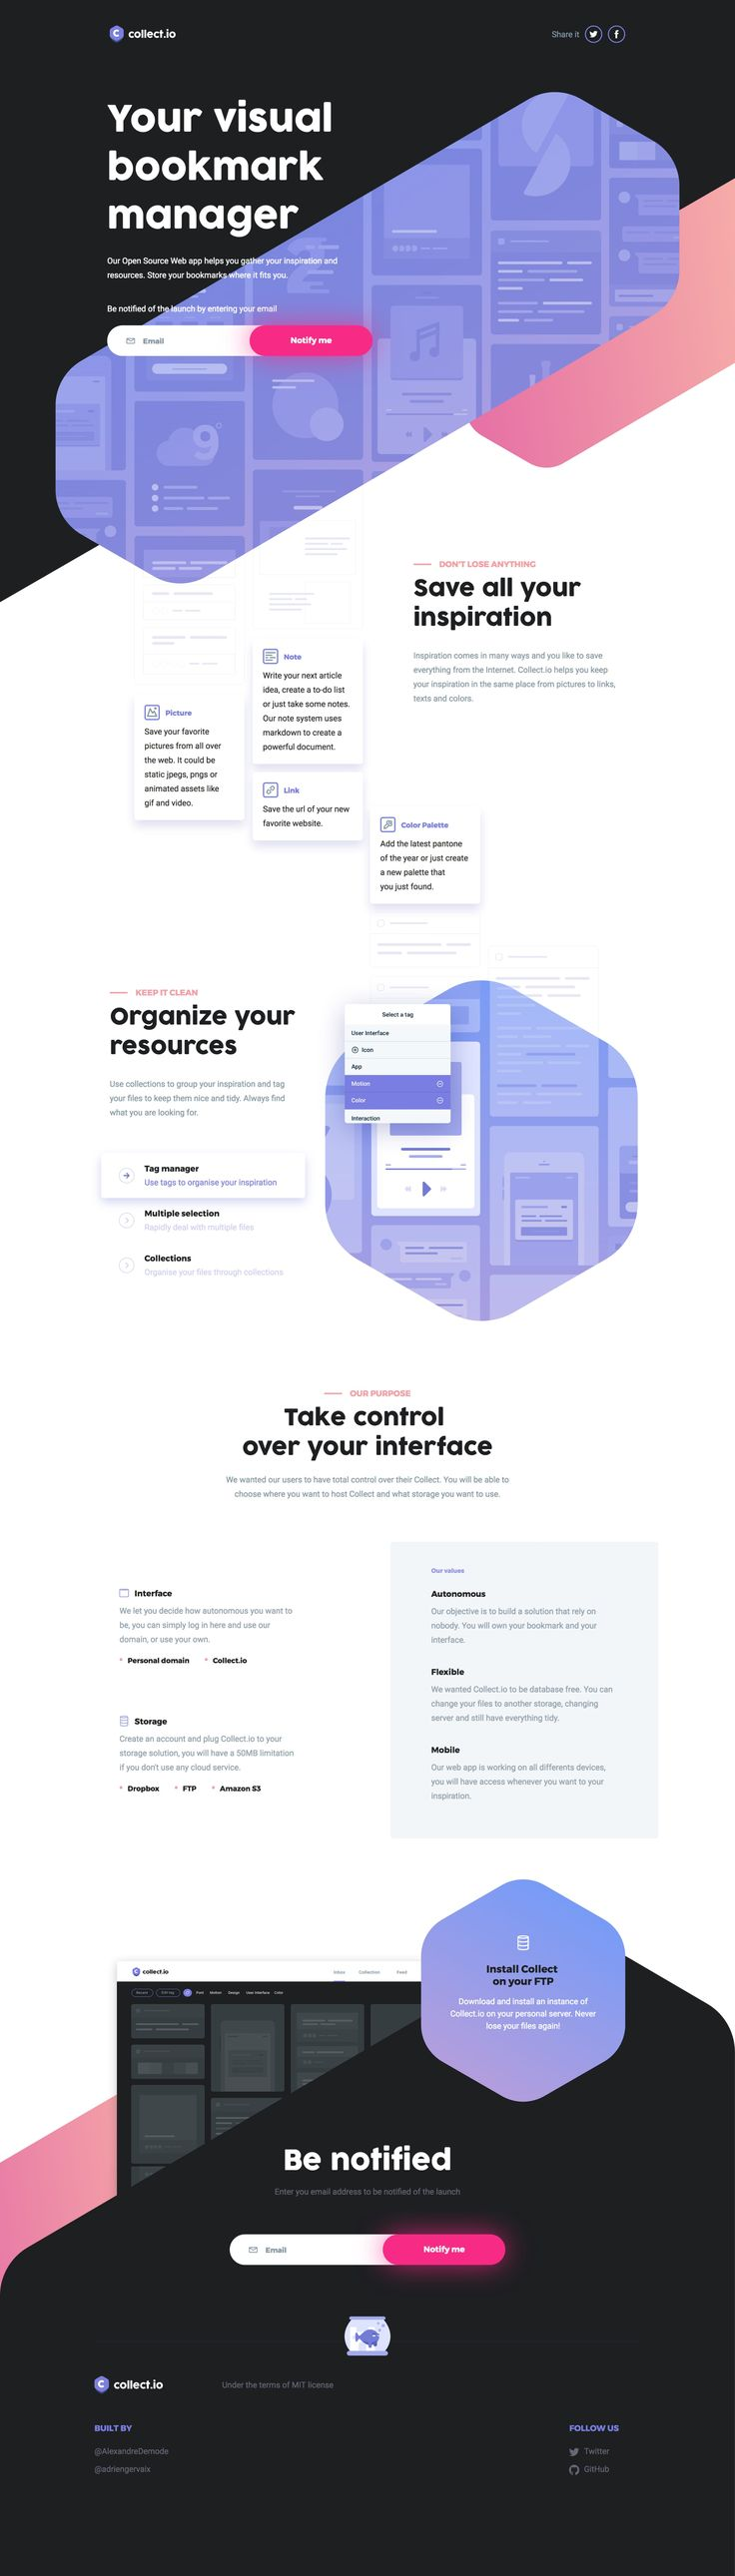 Great looking launching soon page for Collect.io - an upcoming (Open Source) visual bookmark manager. The interactive 'Organize your resources' section is really impressive.